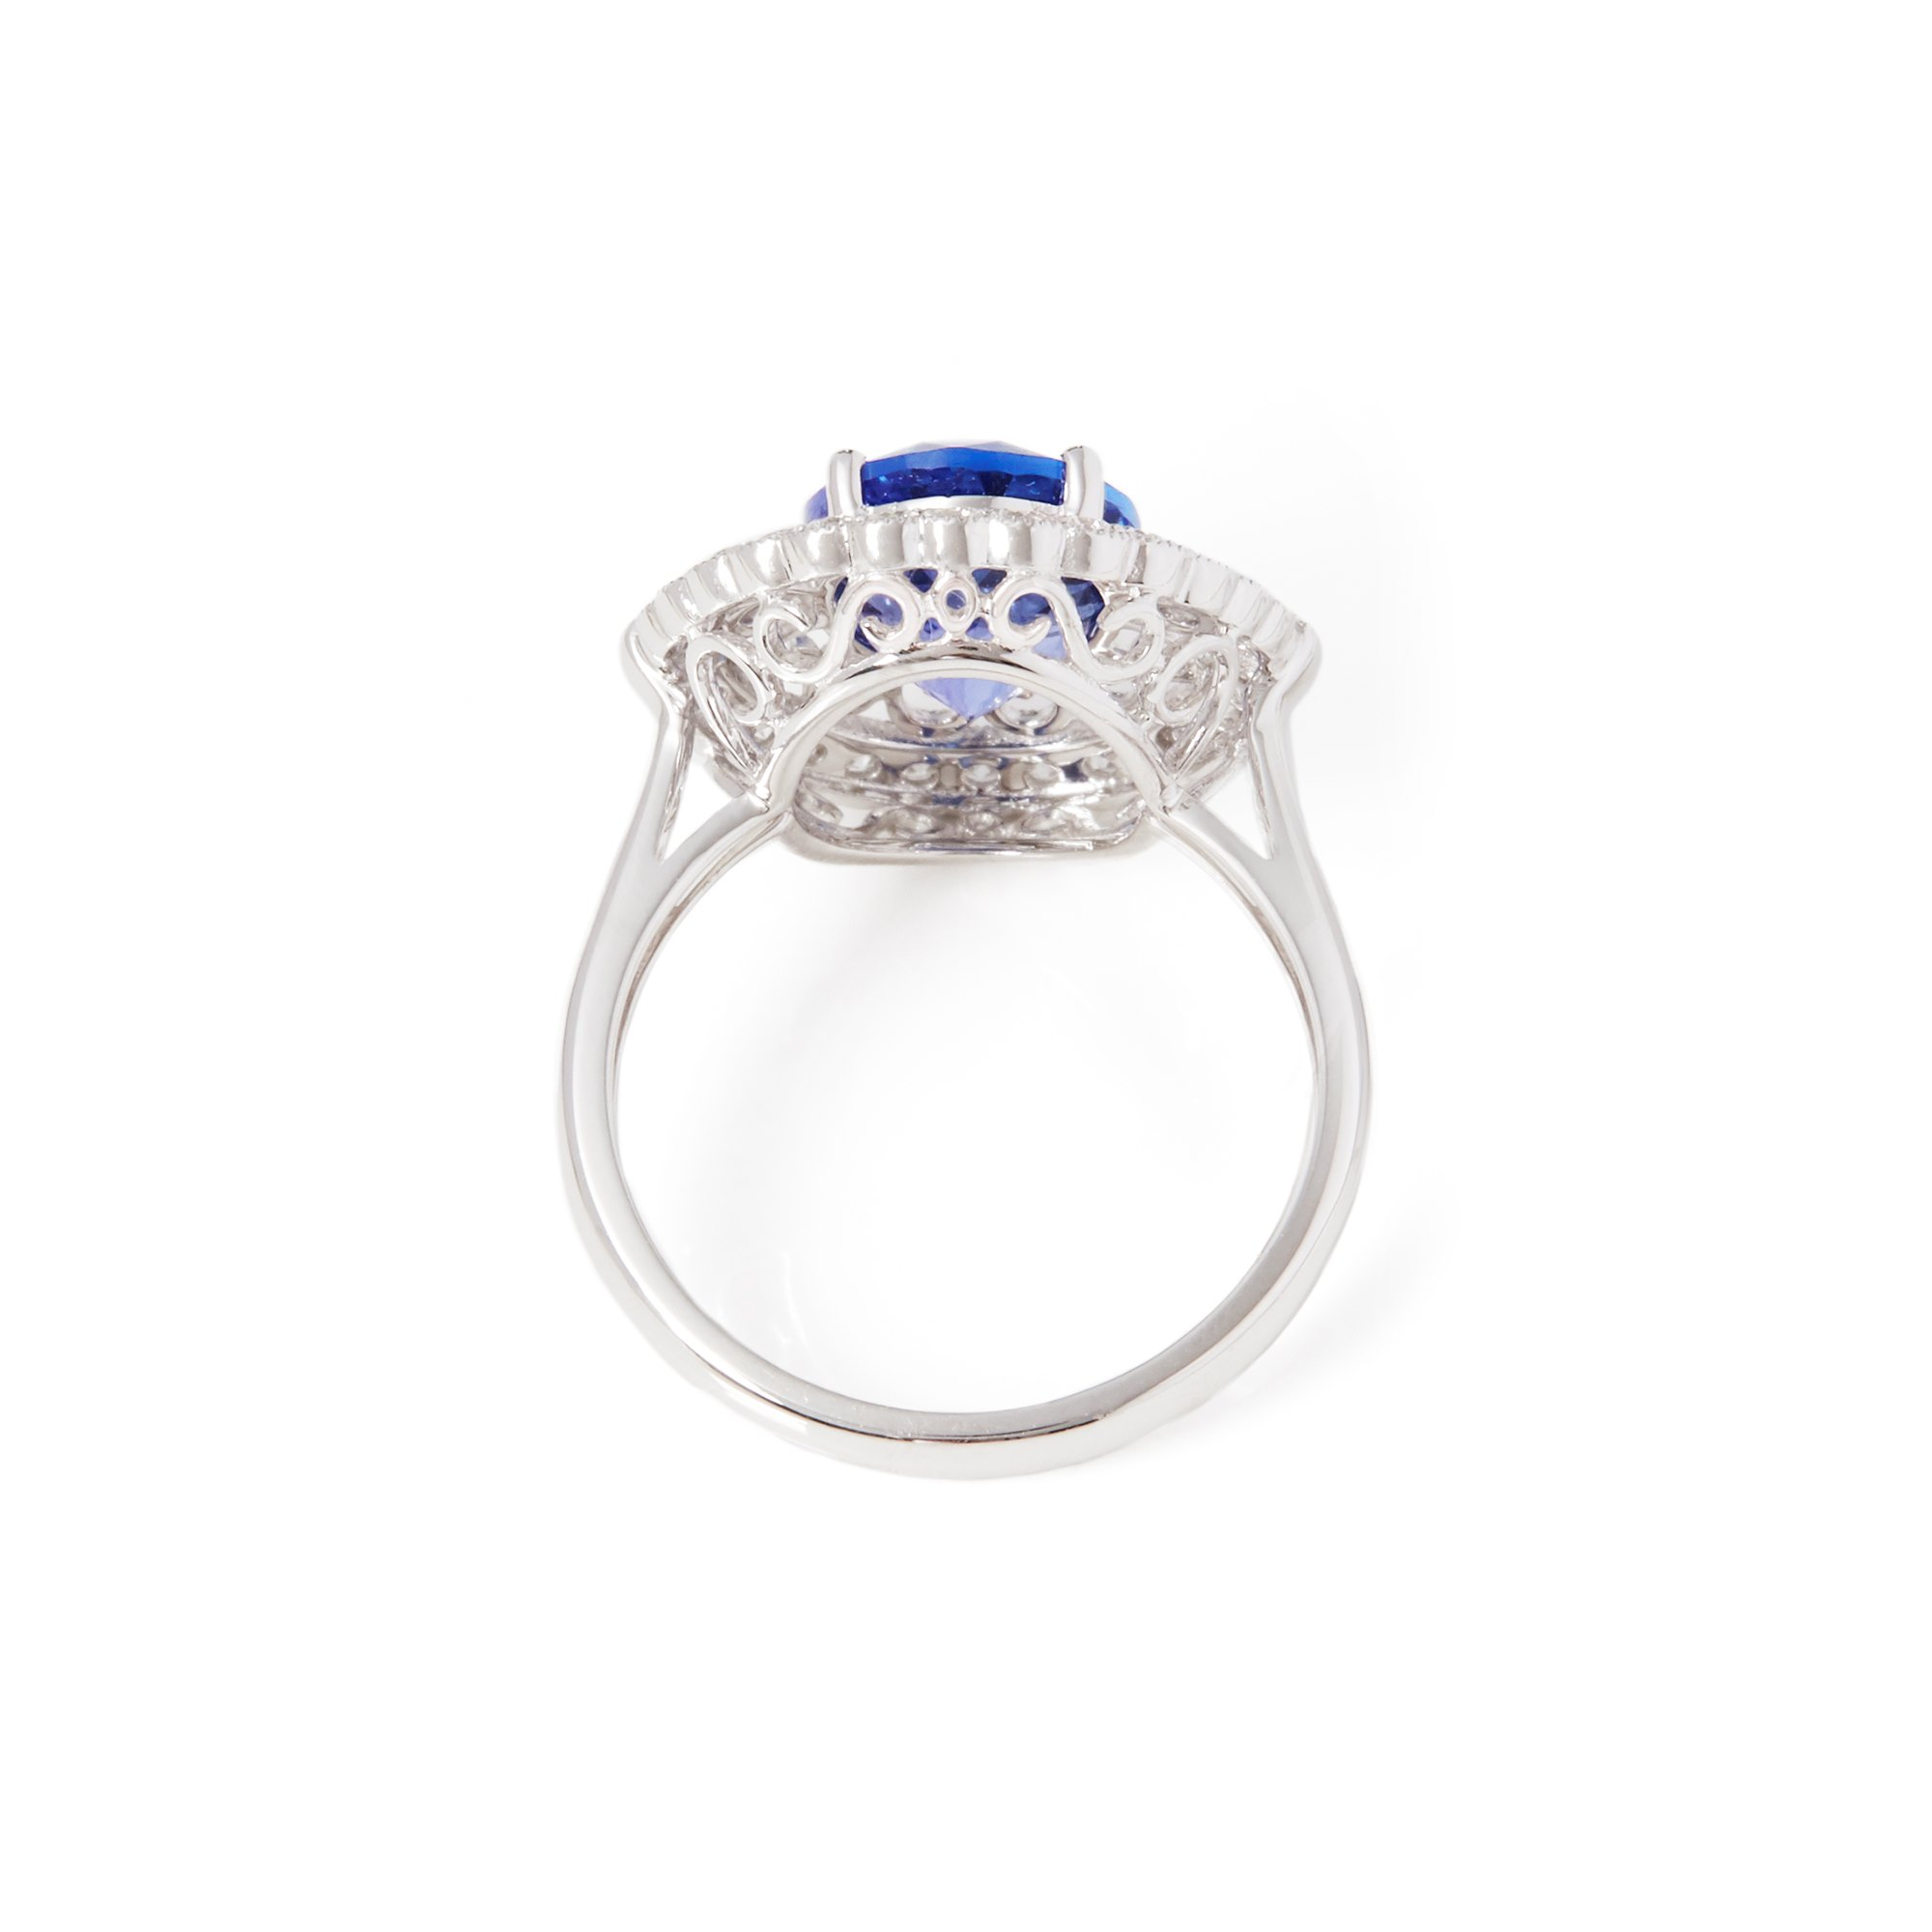 David Jerome Certified 3.96ct Oval Cut Tanzanite and Diamond 18ct Gold Ring